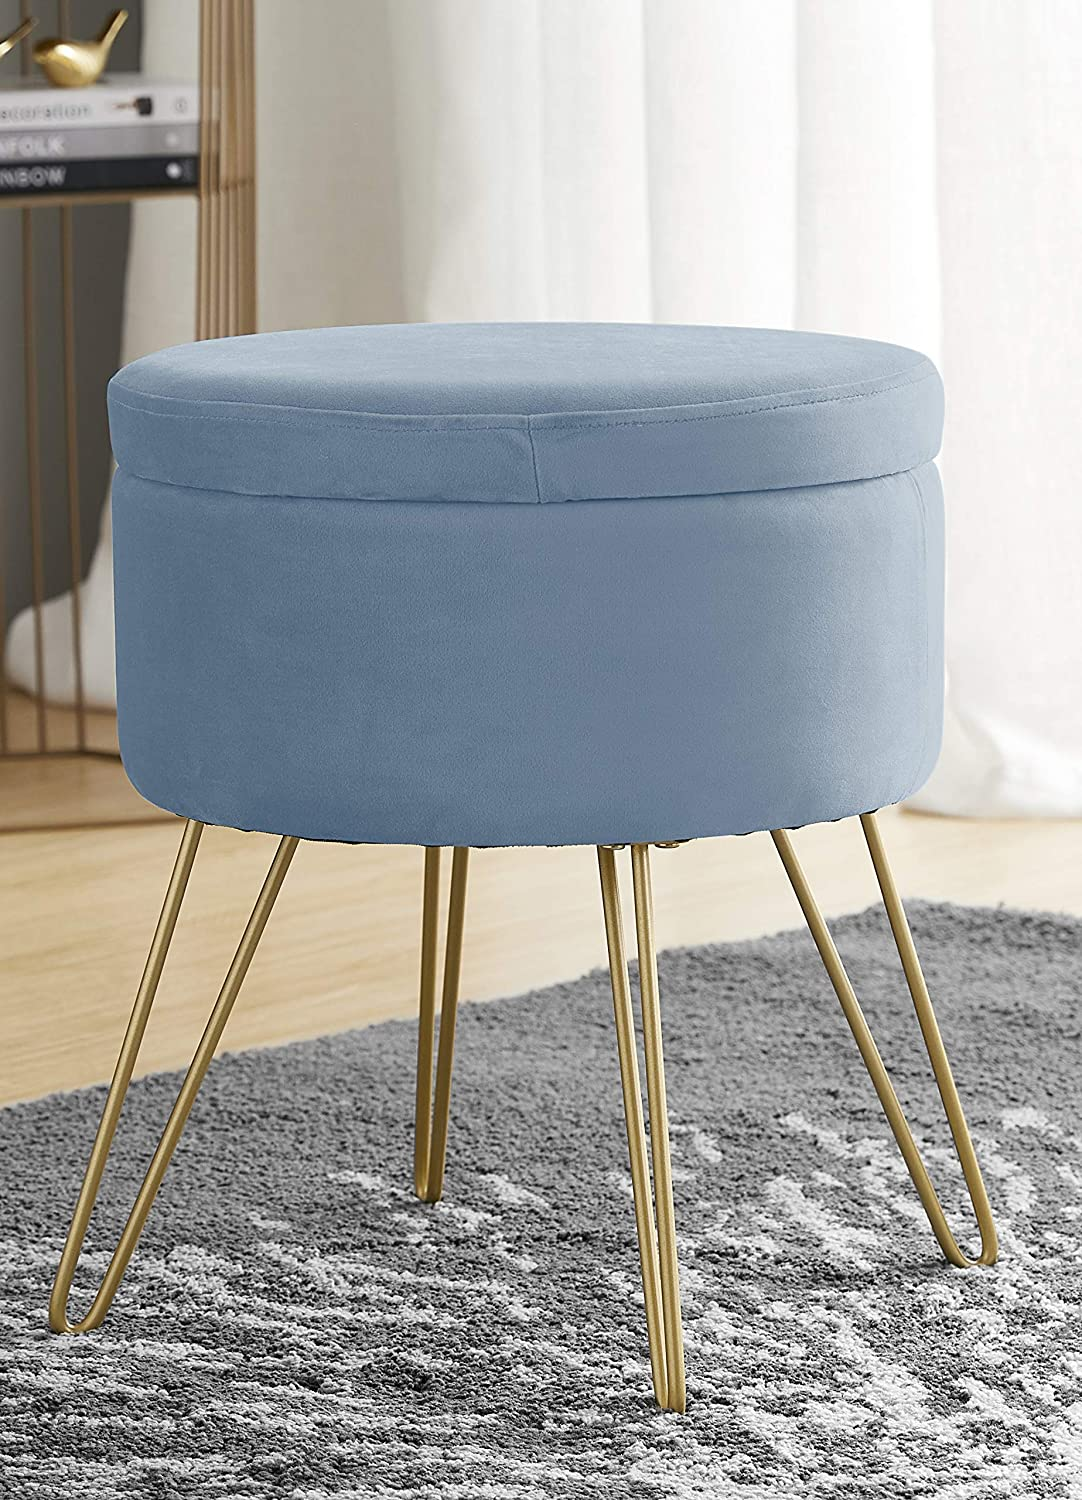 Ornavo Home Modern Round Velvet Storage Ottoman Foot Rest Stool/Seat with Gold Metal Legs & Tray Top Coffee Table - Dusty Blue